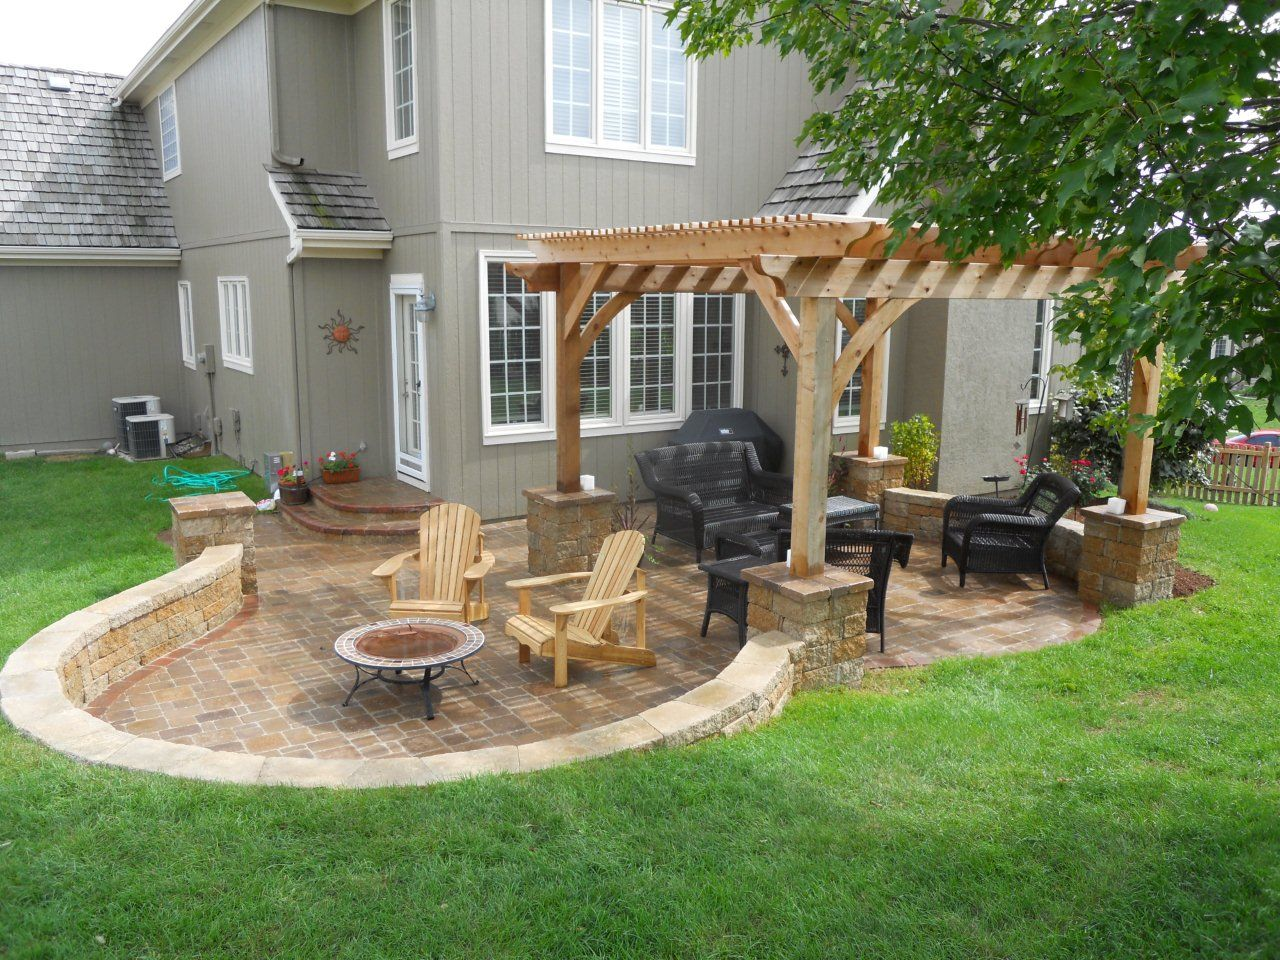 22 Awesome Pergola Patio Ideas More. Samanta  22 Awesome Pergola Patio Ideas   Sunrooms  Screened